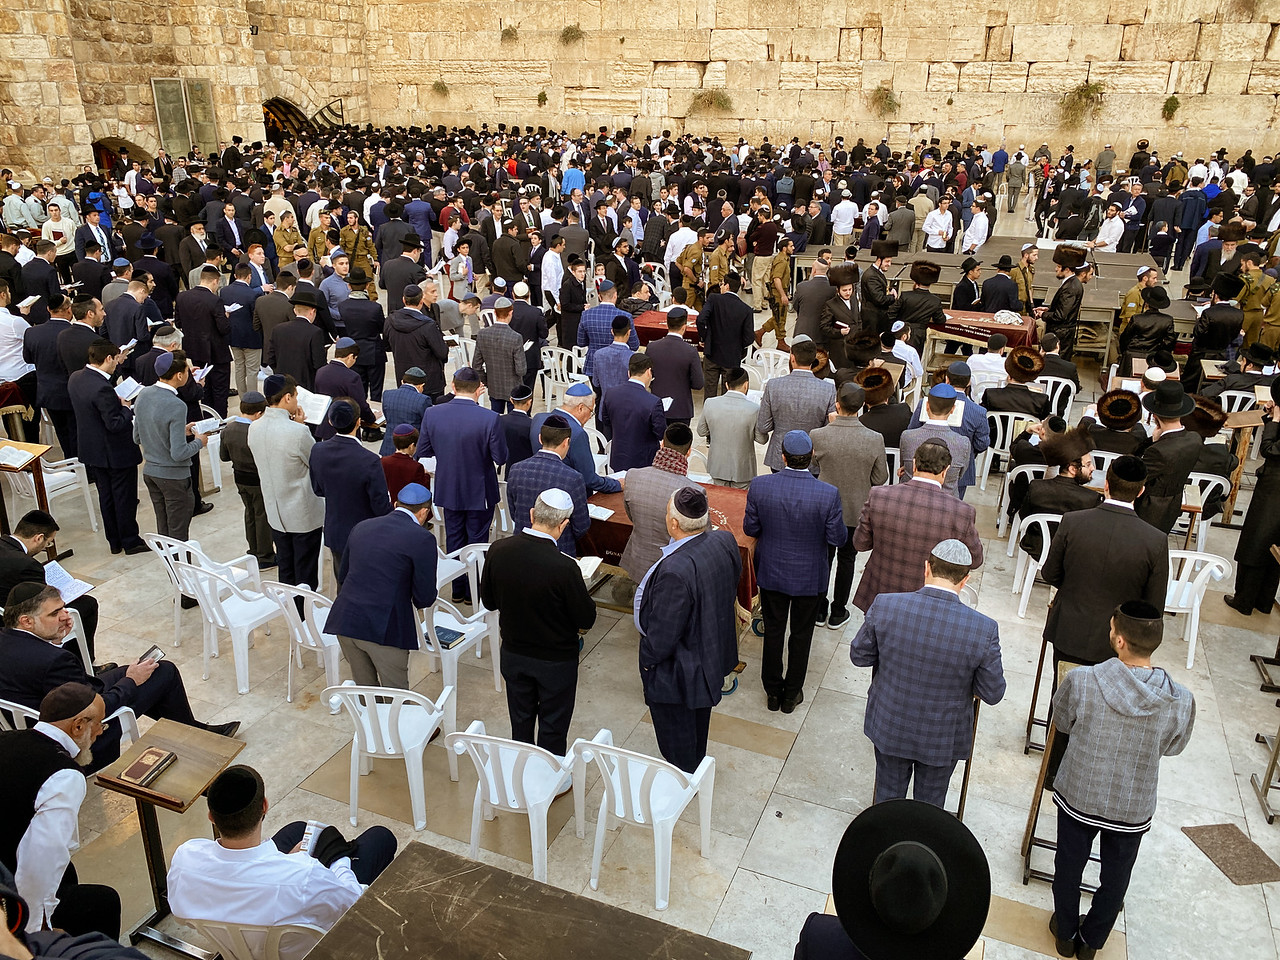 Gathering at the Western Wall Before the Start of Shabbat